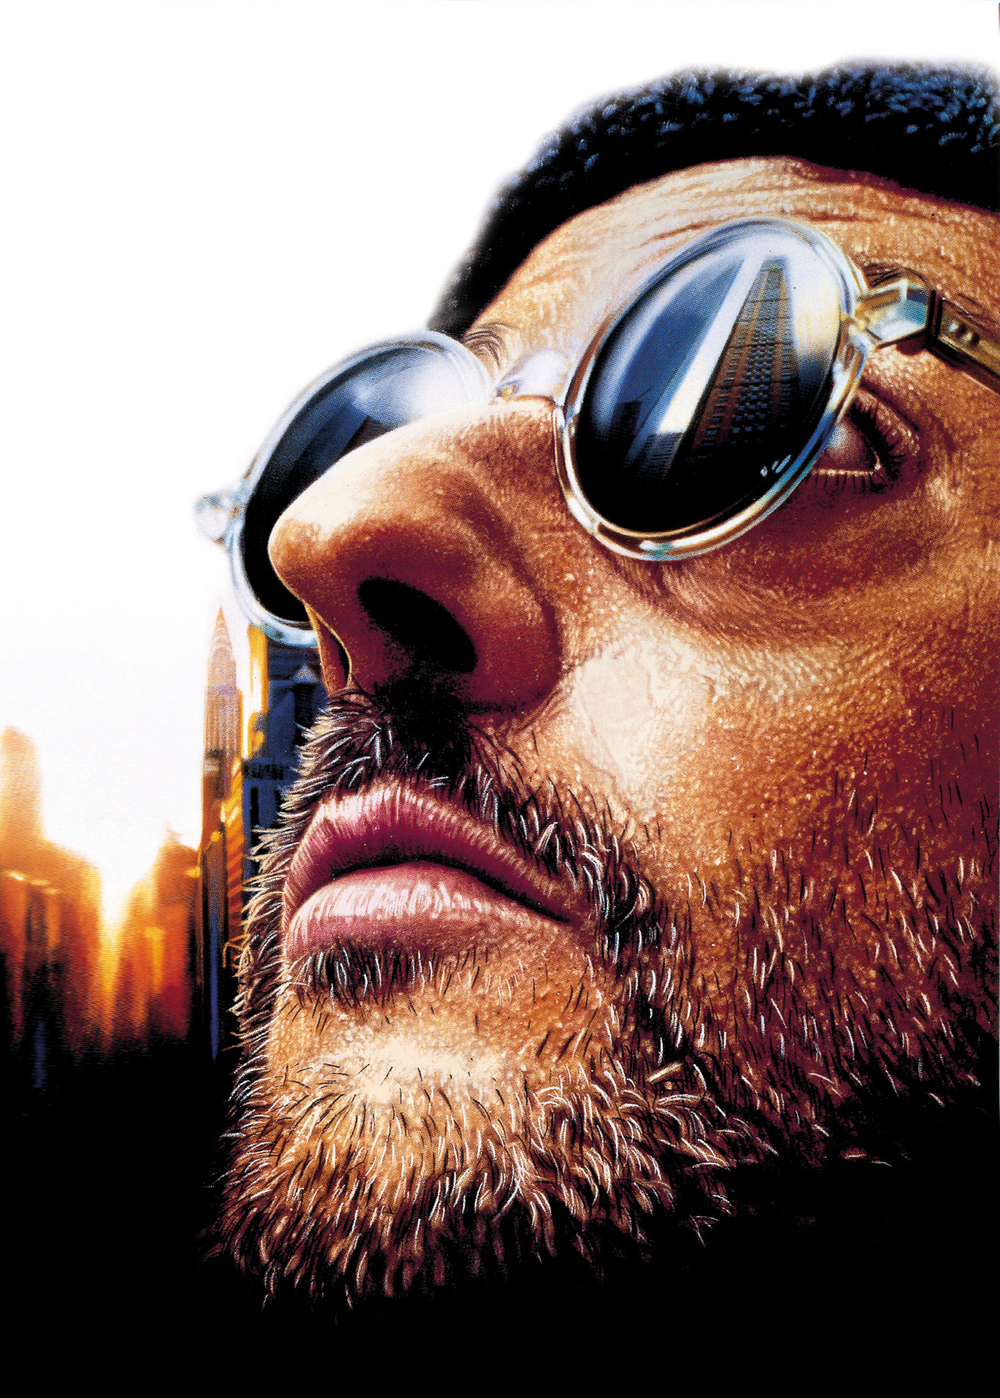 The Proffesional (1994) - Luc Besson